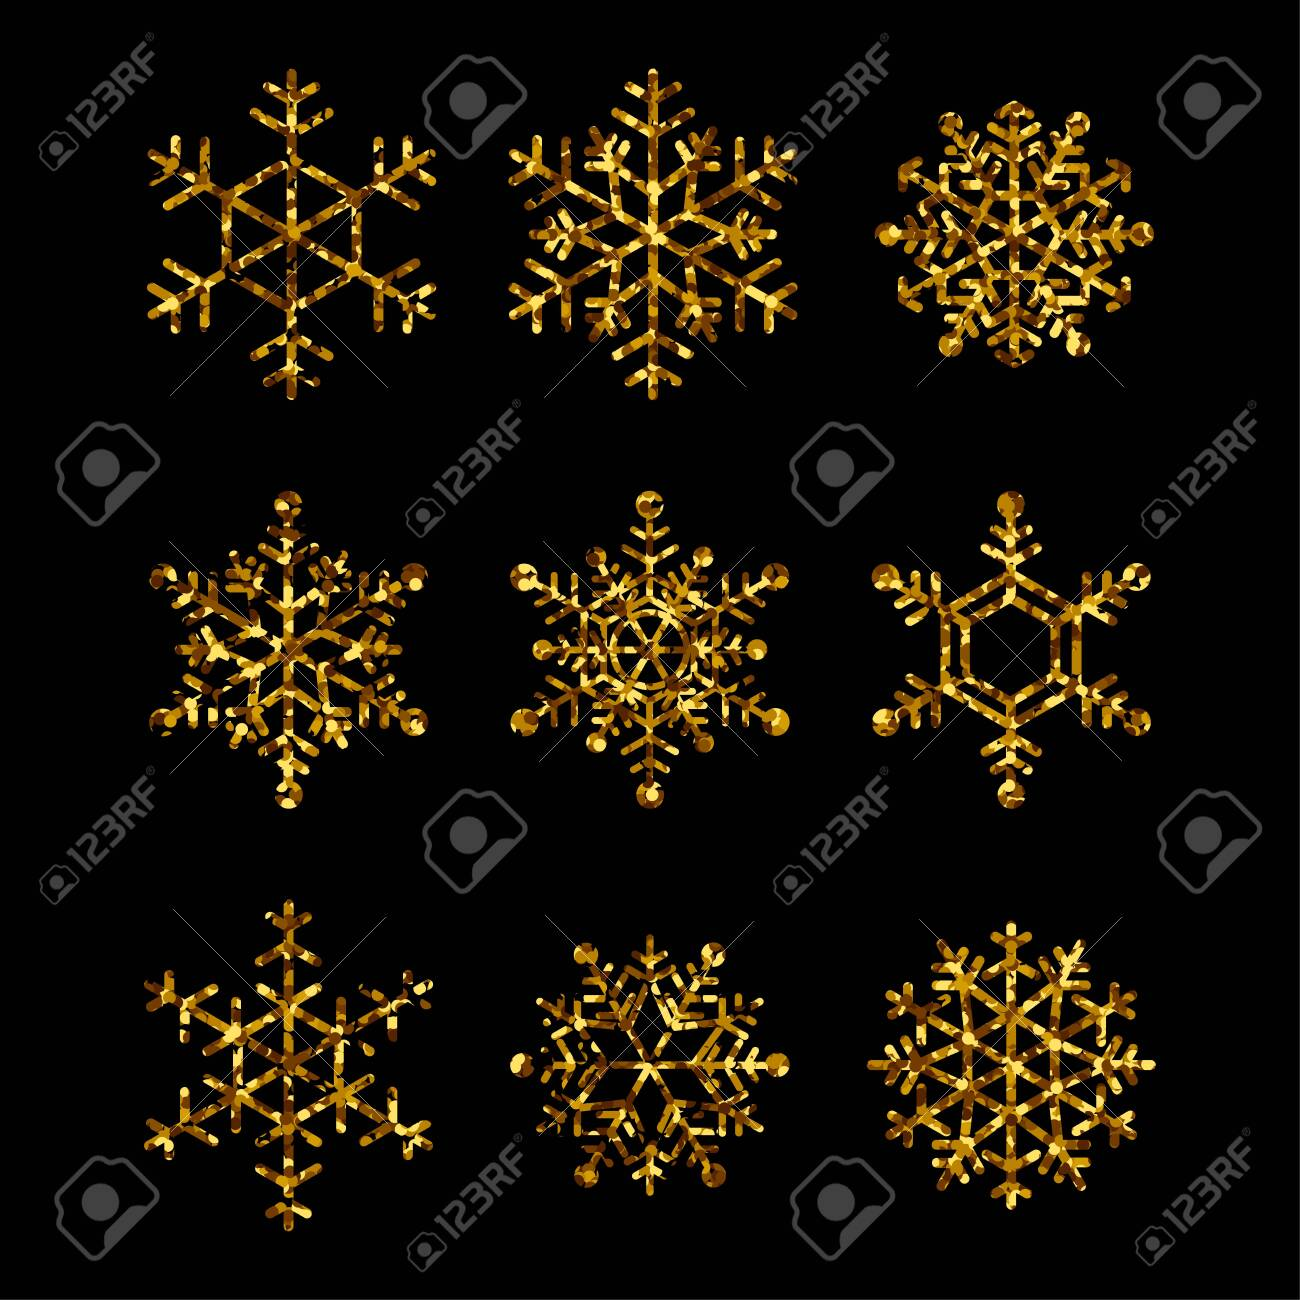 Collection of gold snowflakes. Vector isolated icons for winter holidays, christmas and new year illustrations - 131965561